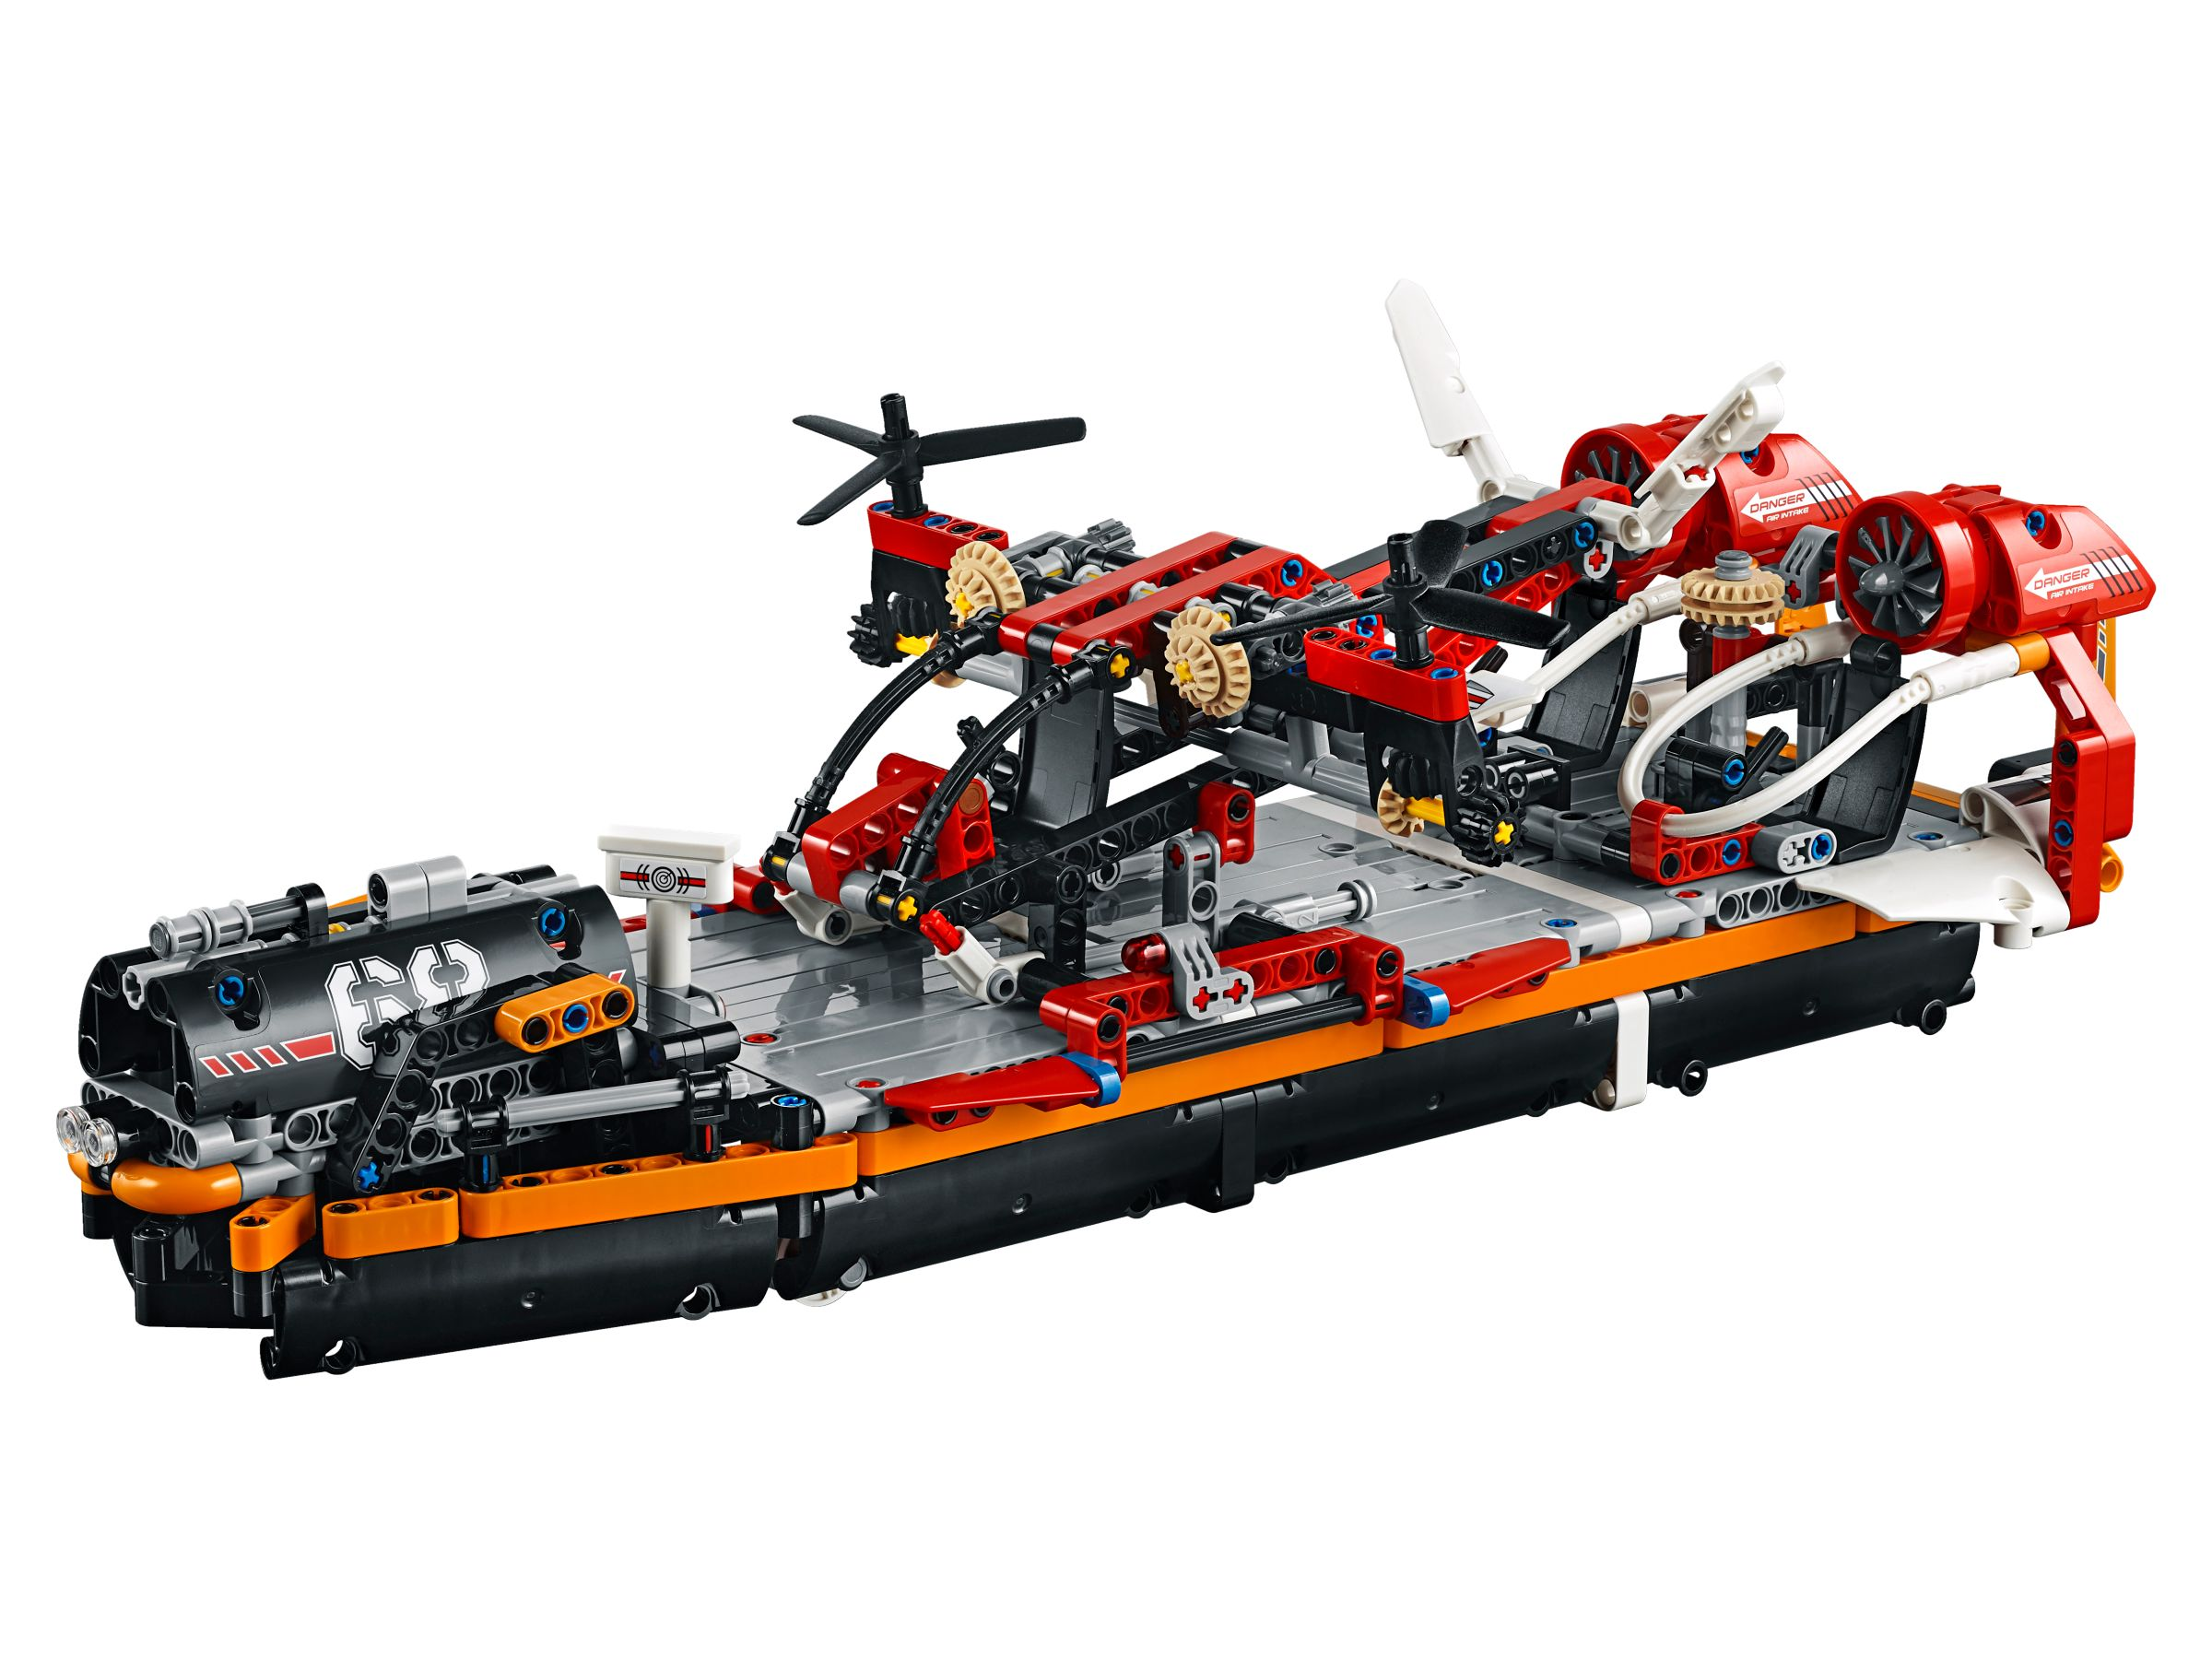 lego 42076 luftkissenboot technic 2018 ab 52 77 25 gespart hovercraft brickmerge. Black Bedroom Furniture Sets. Home Design Ideas